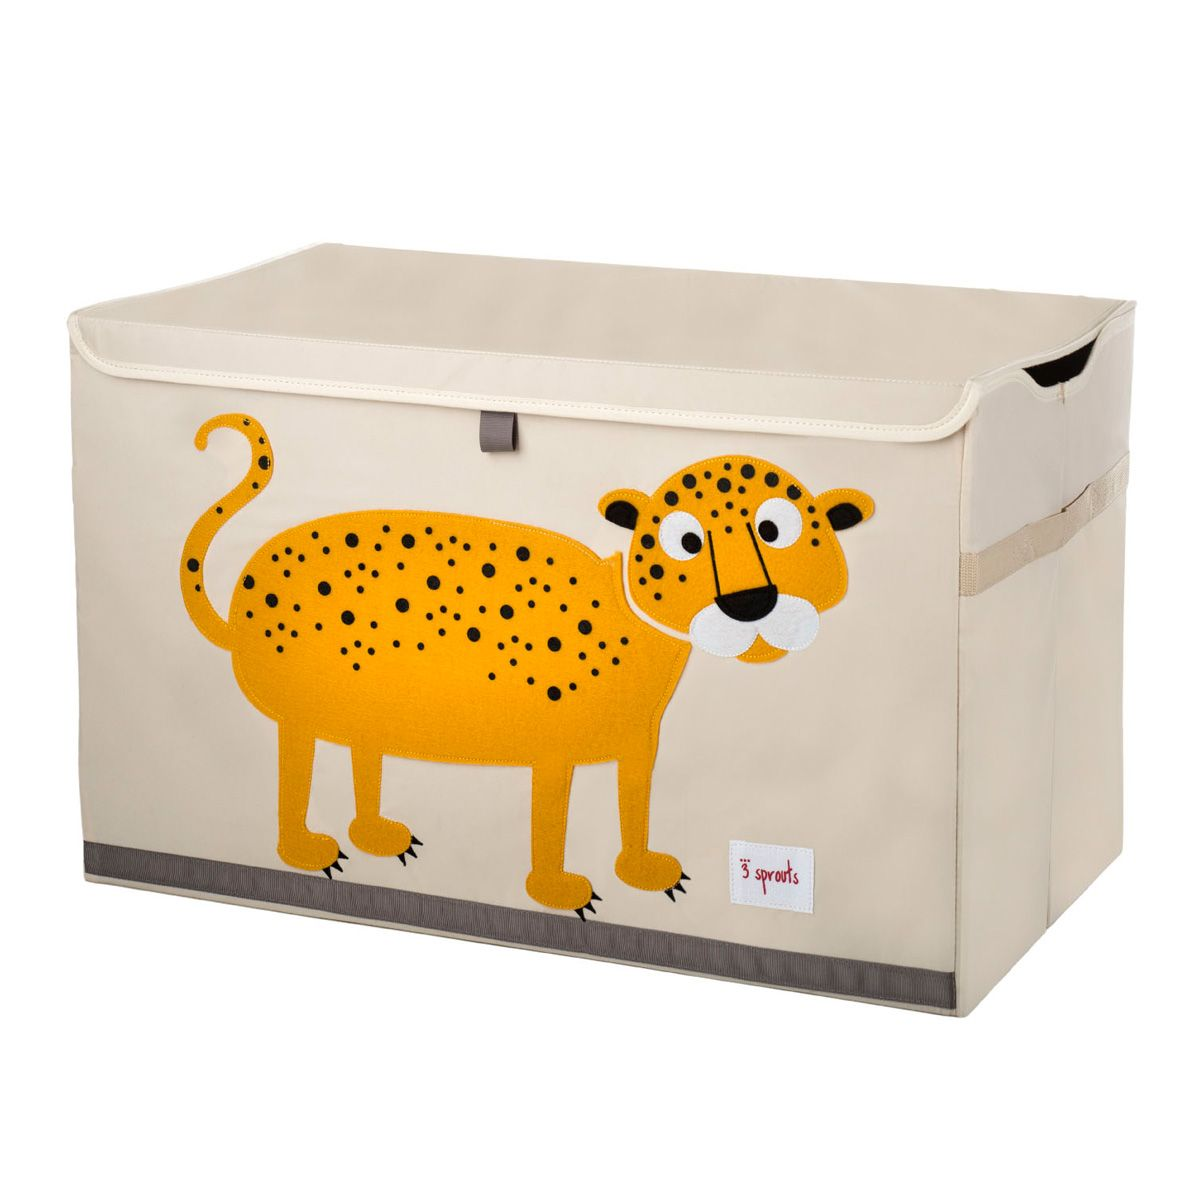 3 sprouts spielzeugkiste leopard little roomers. Black Bedroom Furniture Sets. Home Design Ideas